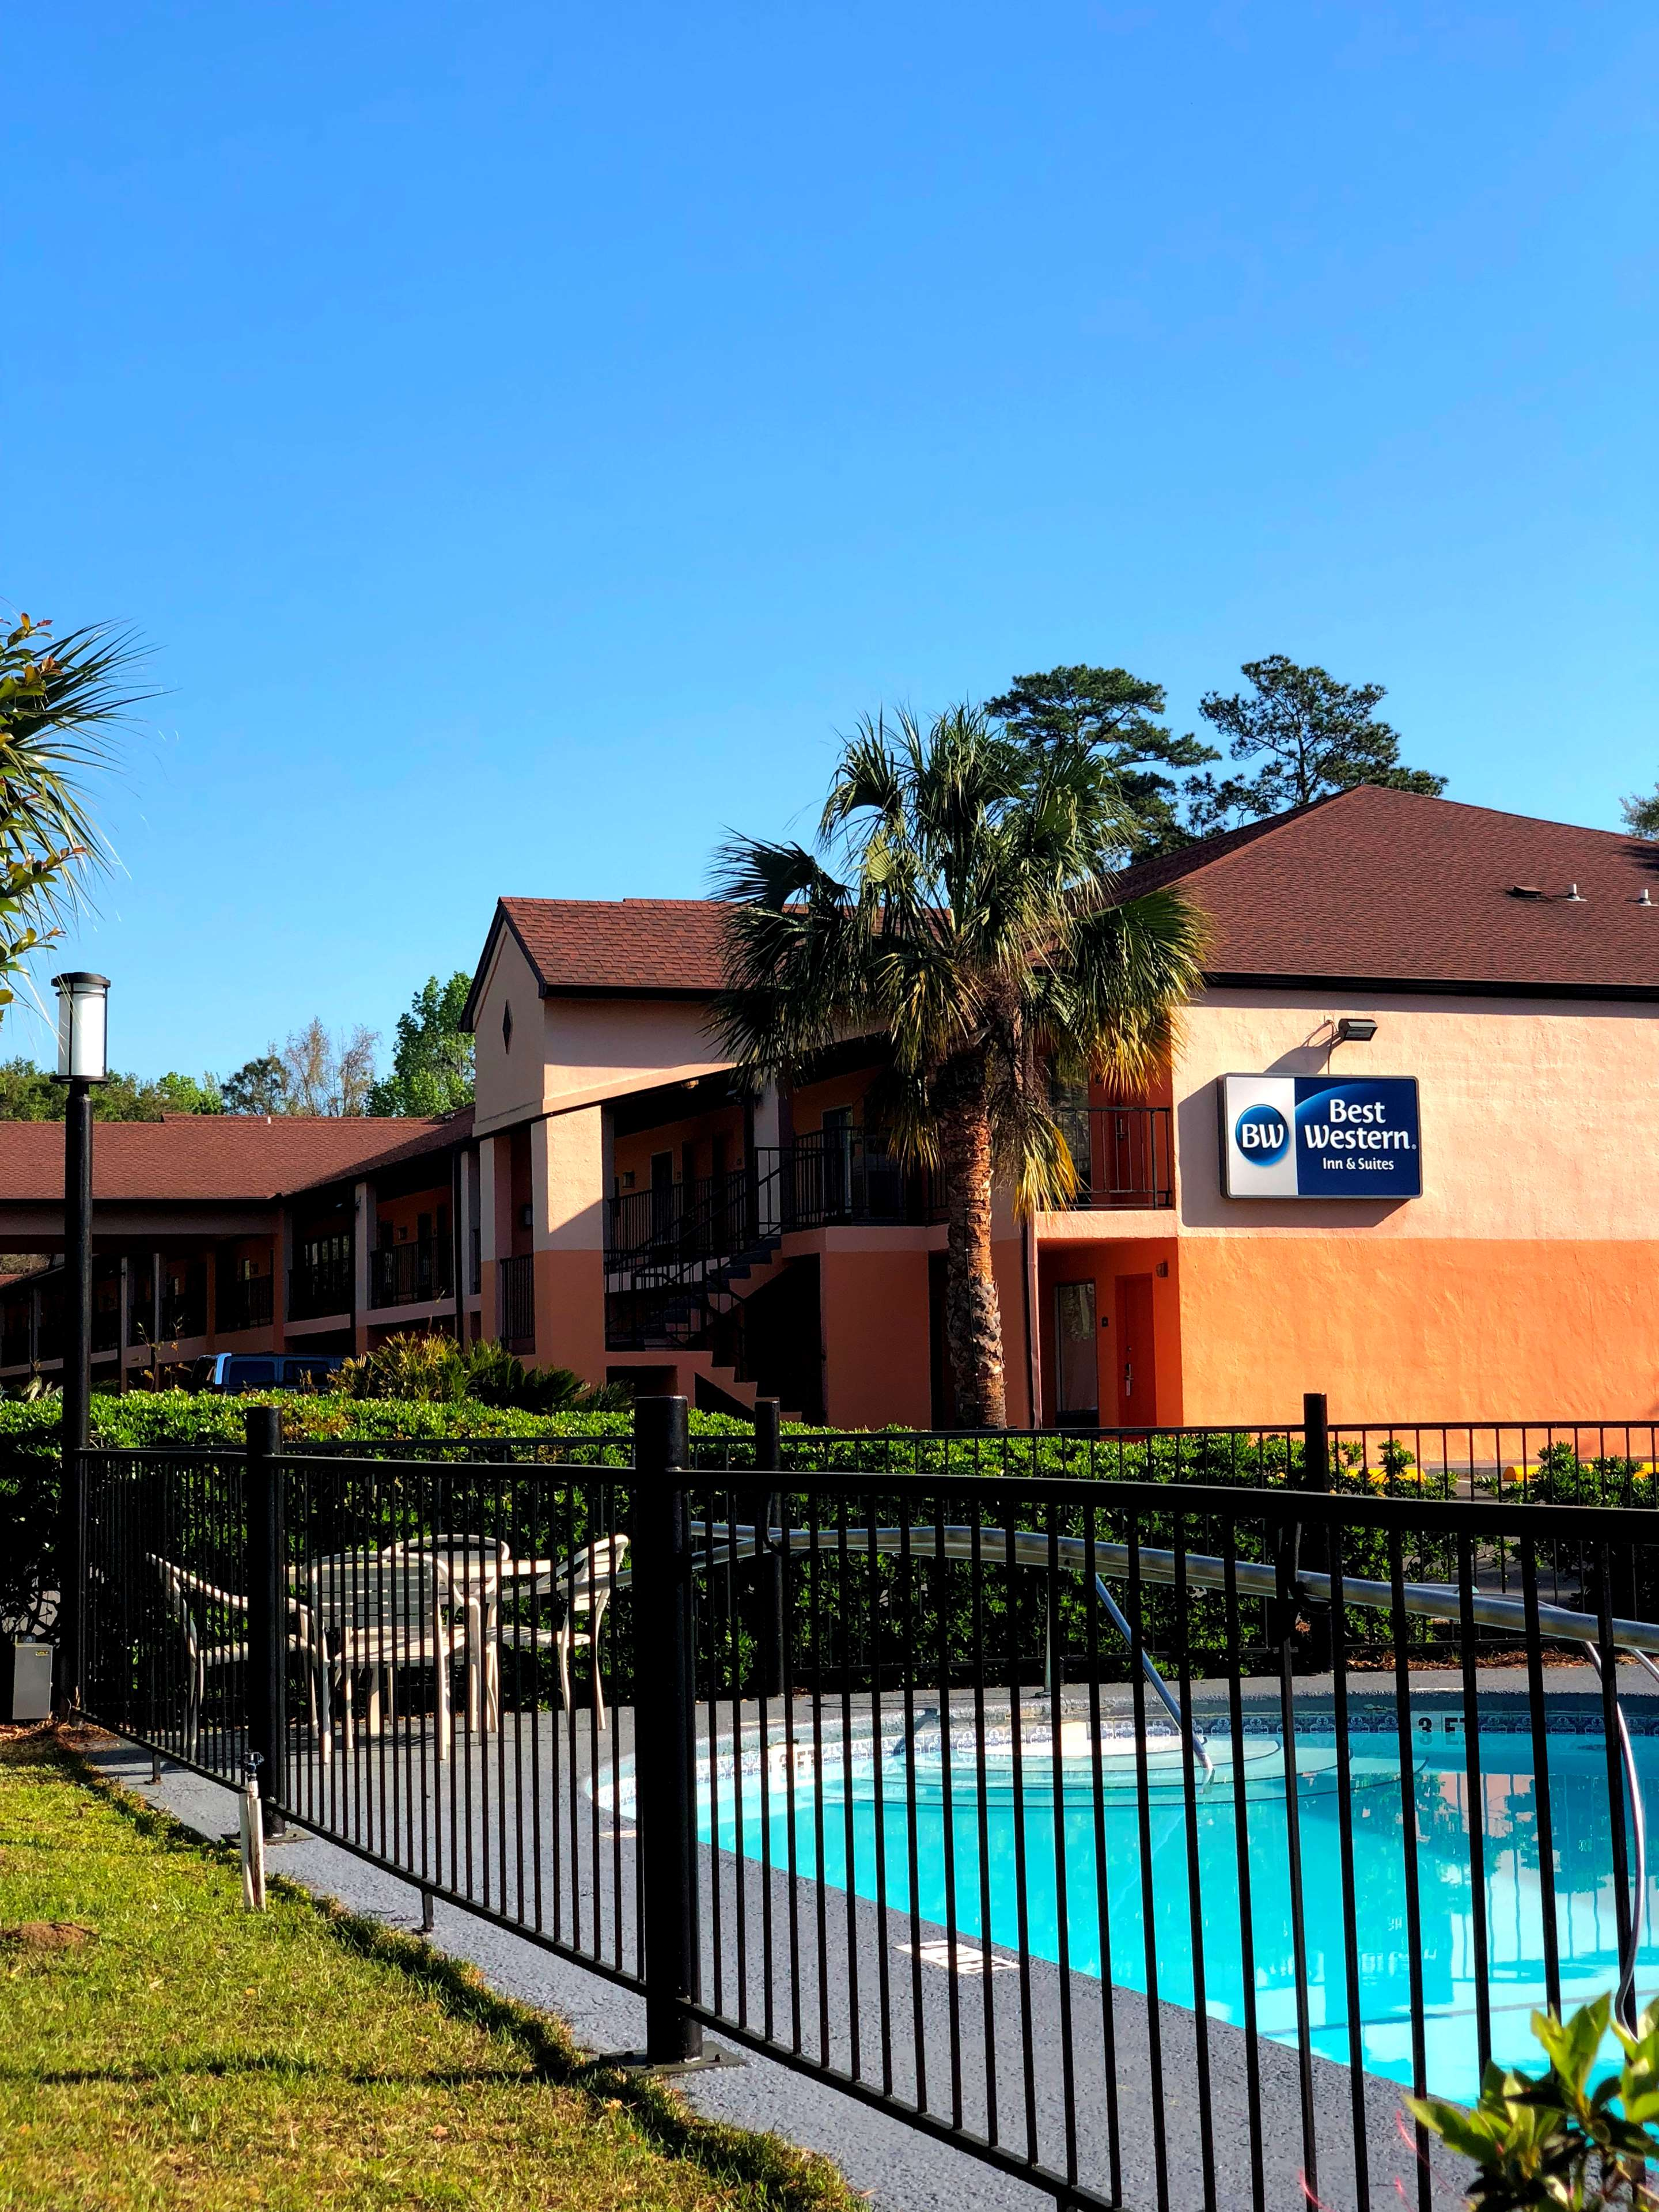 Best Western Tallahassee-Downtown Inn & Suites image 1